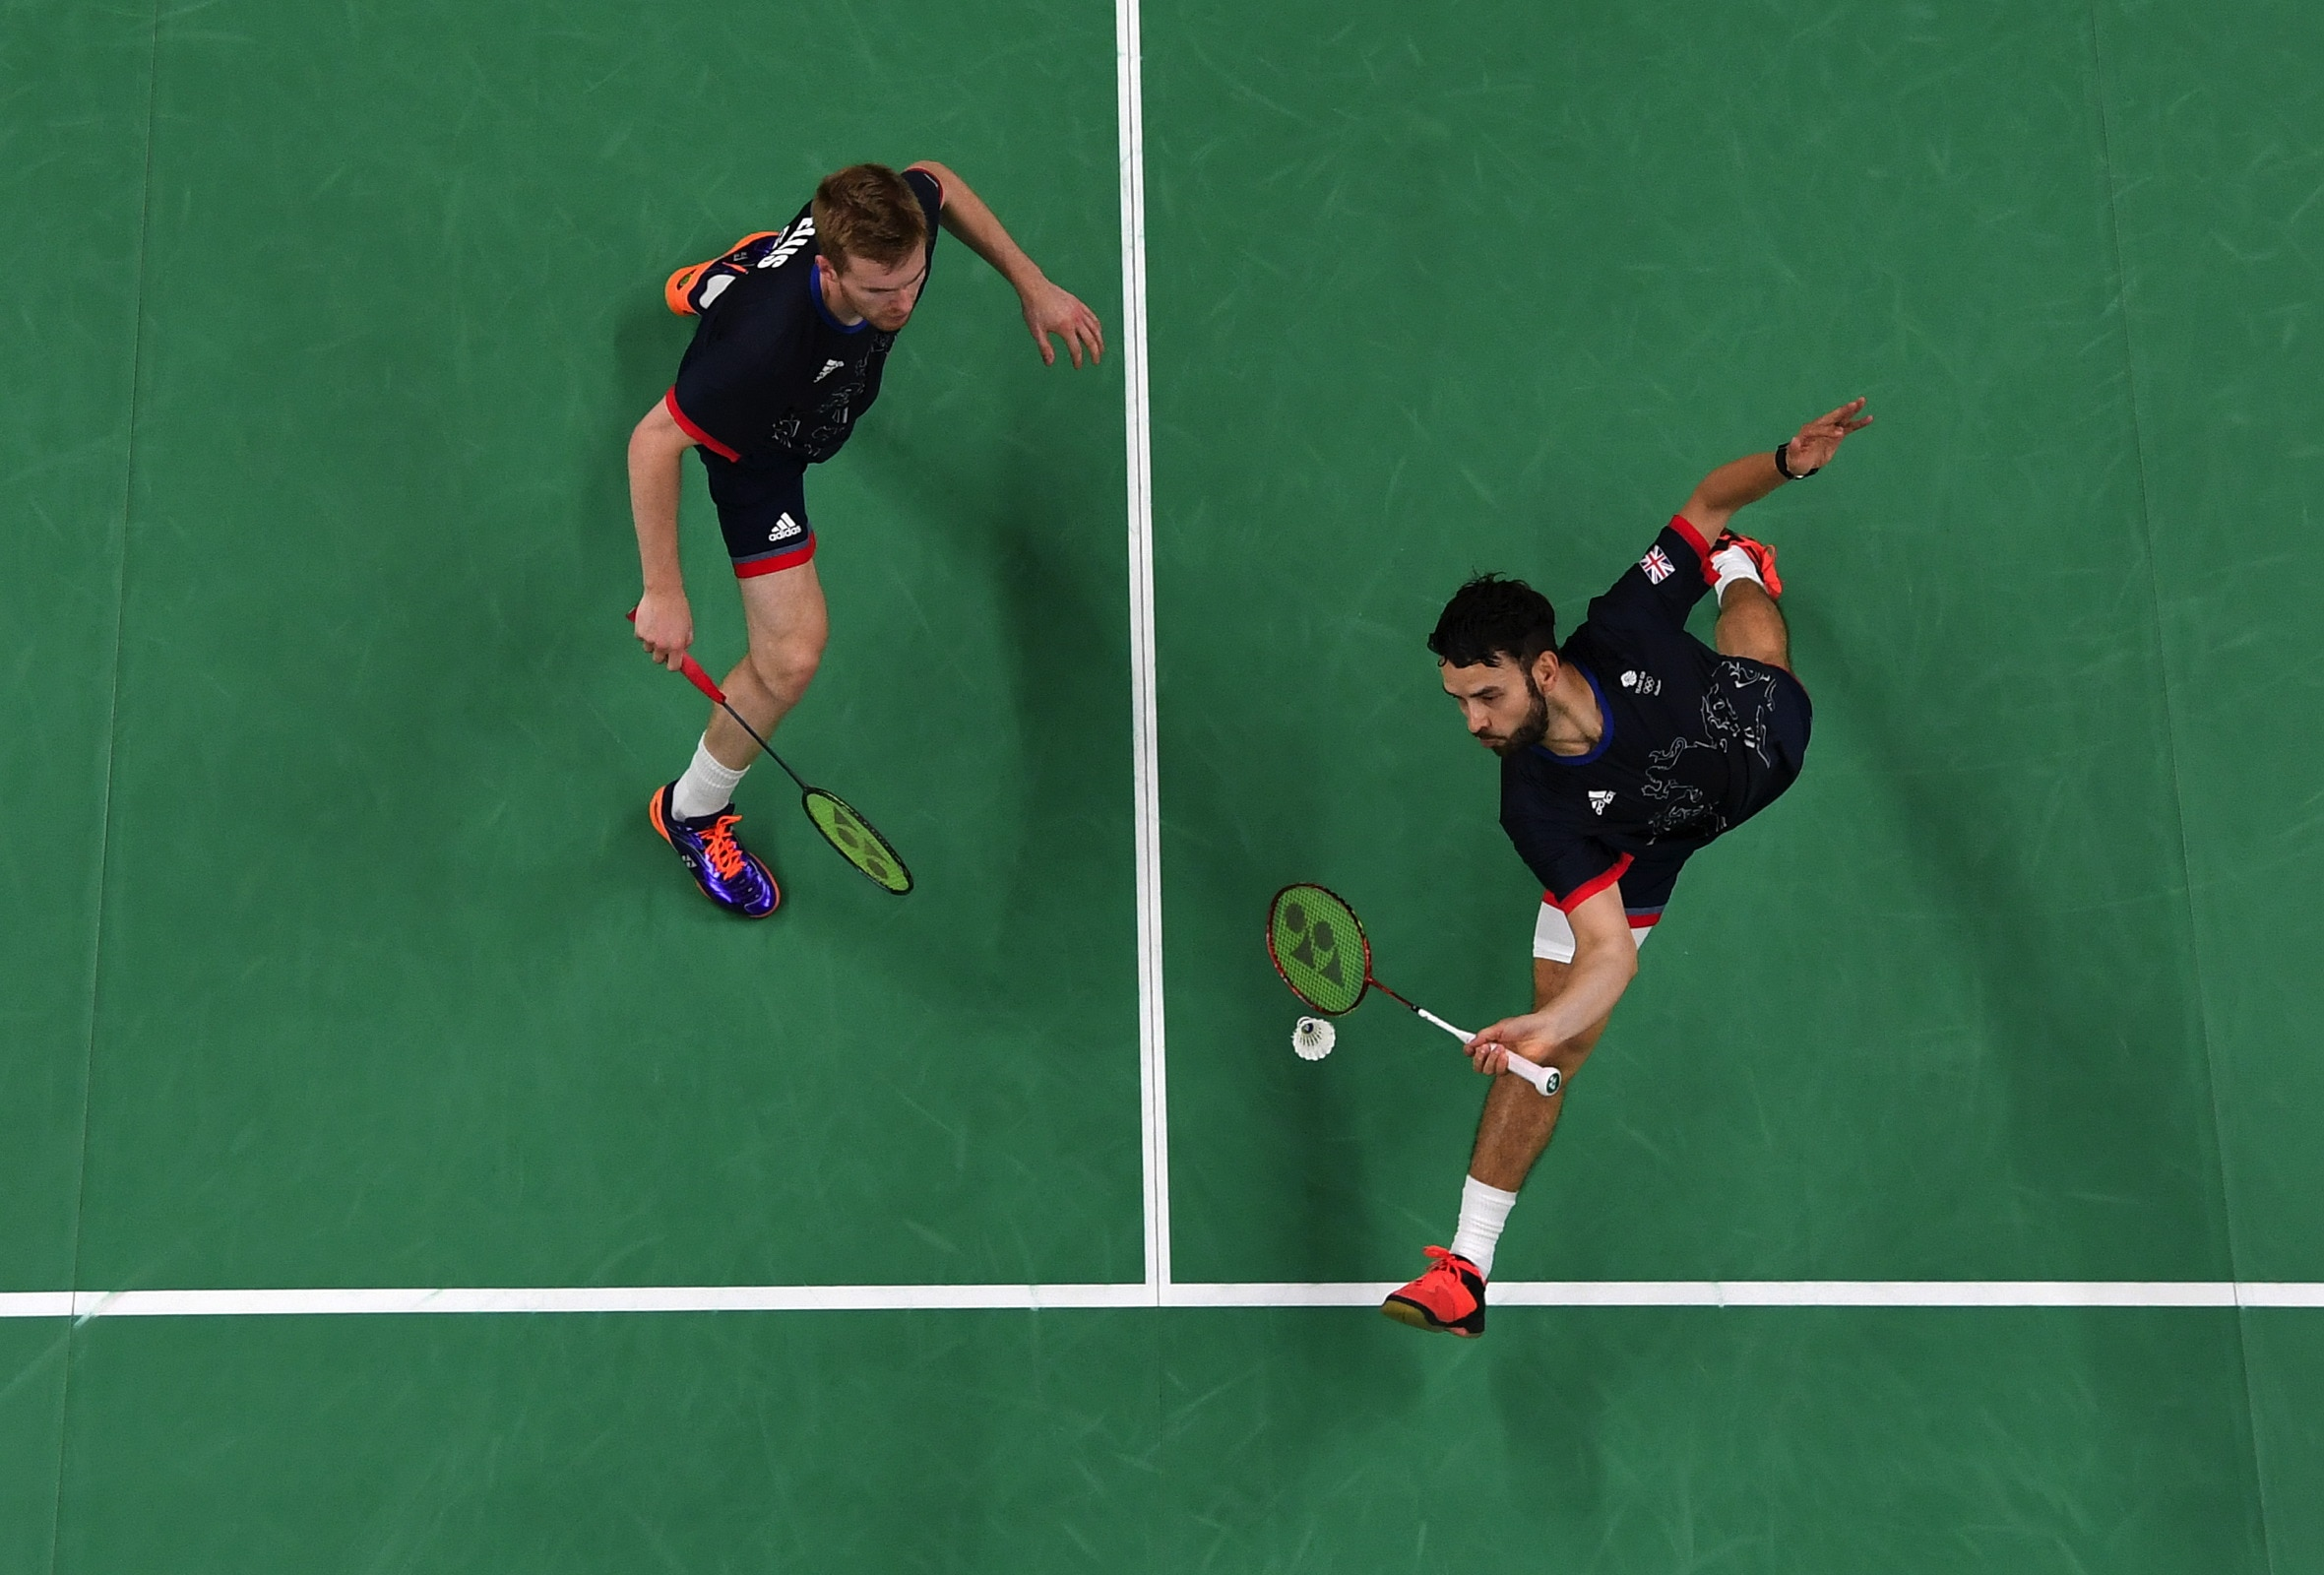 Badminton - Doubles Men